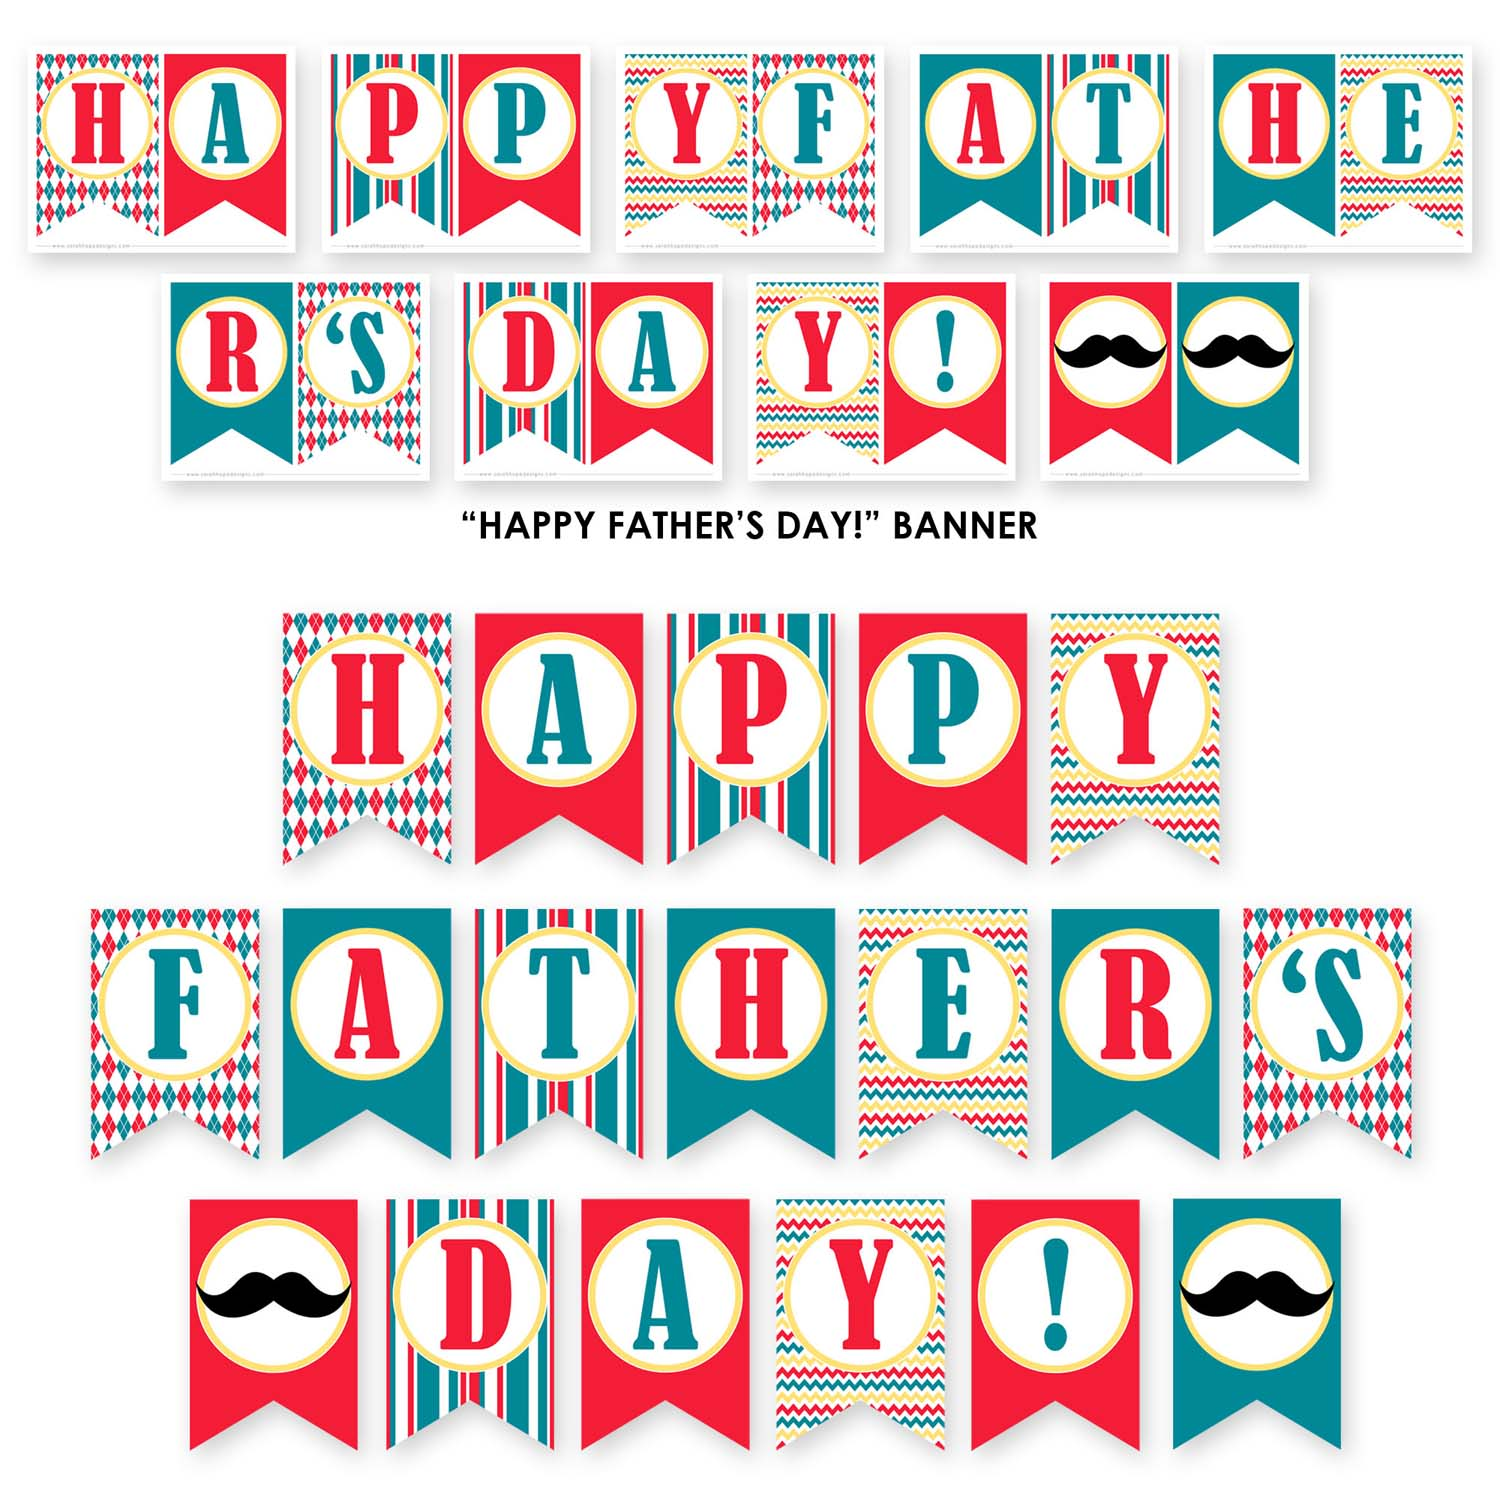 Revered image with happy father's day banner printable